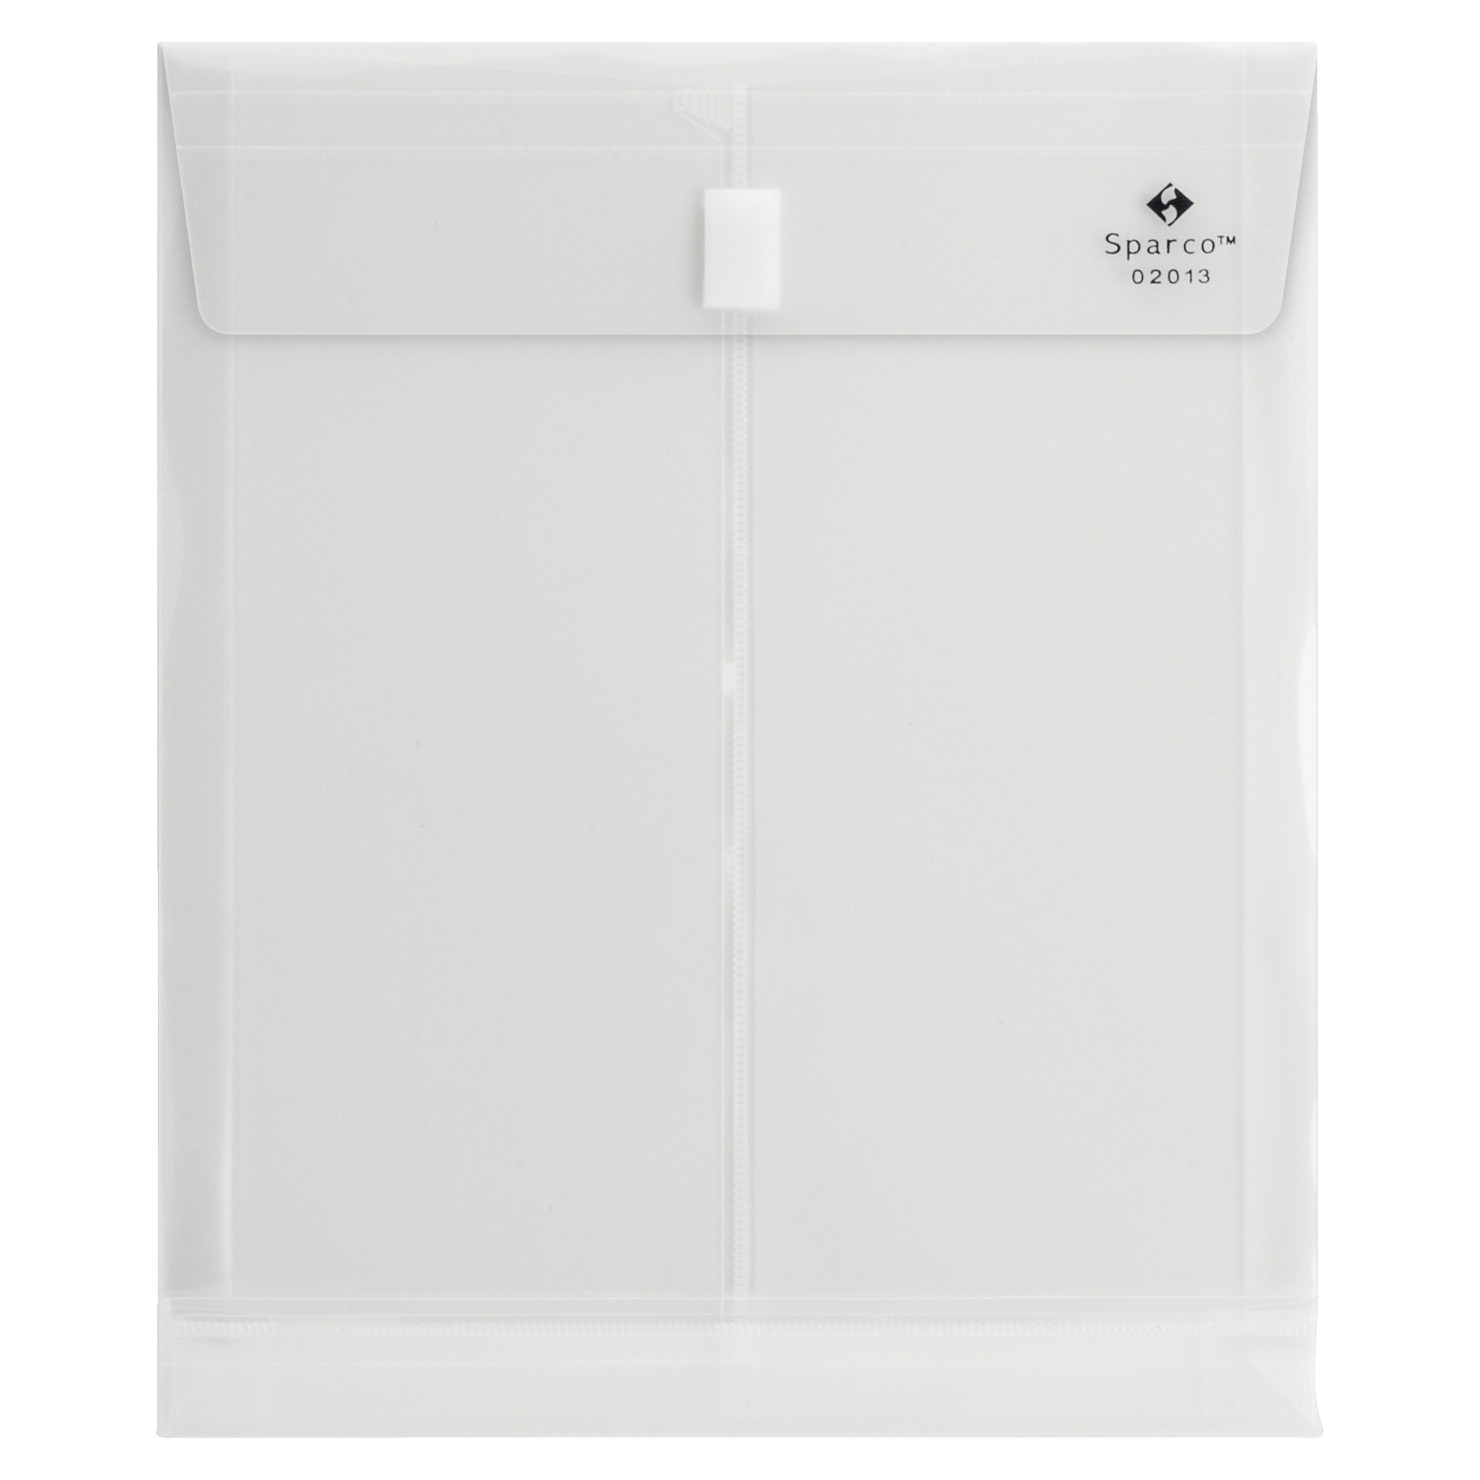 Sparco Envelope Clear School Specialty Marketplace